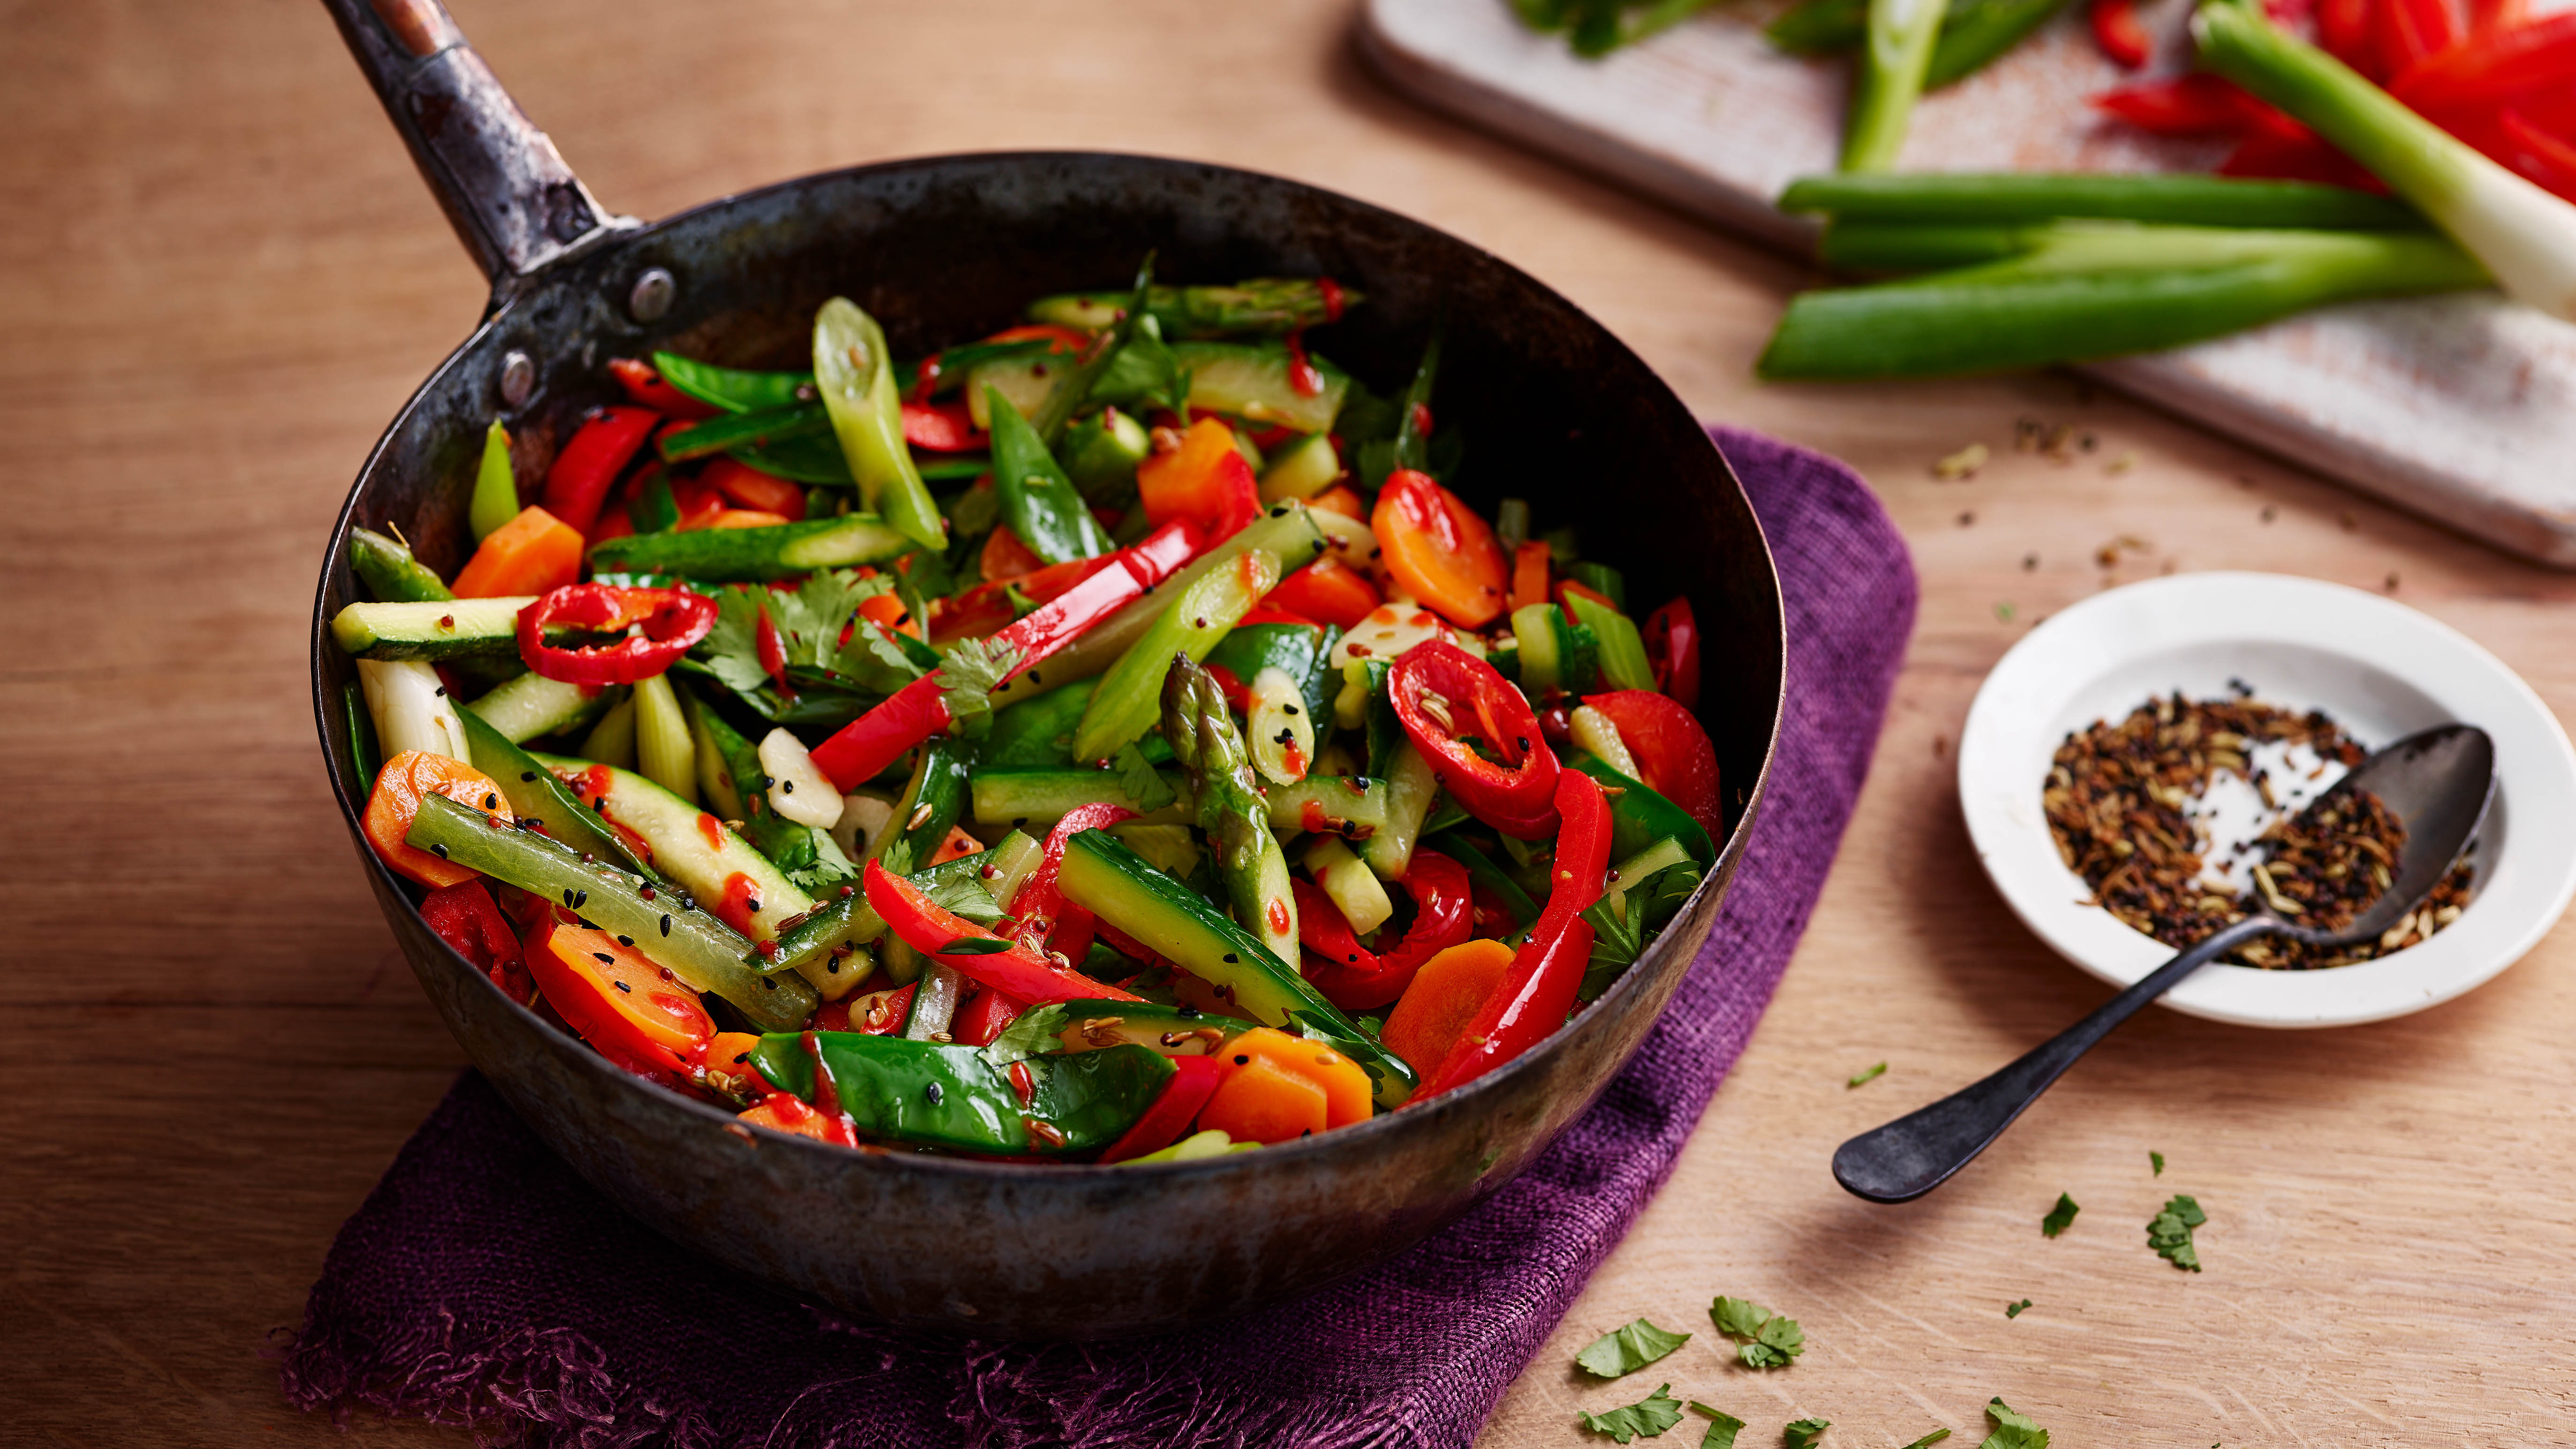 Indian Five Spice Vegetable Stir Fry